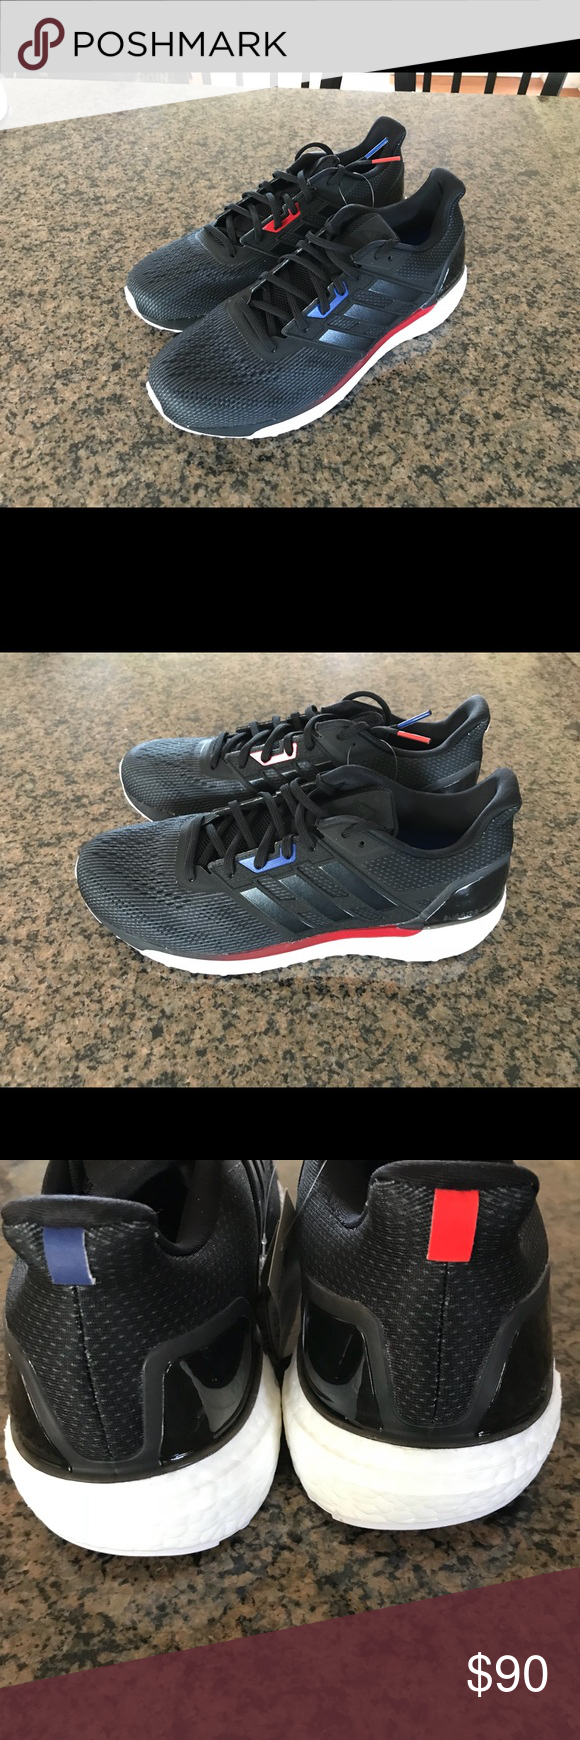 ff6c51289e524 Adidas supernova boost DA9657 running shoes Brand new No box Size 12 Same  or next day shipment Packaged carefully for shipment adidas Shoes Athletic  Shoes